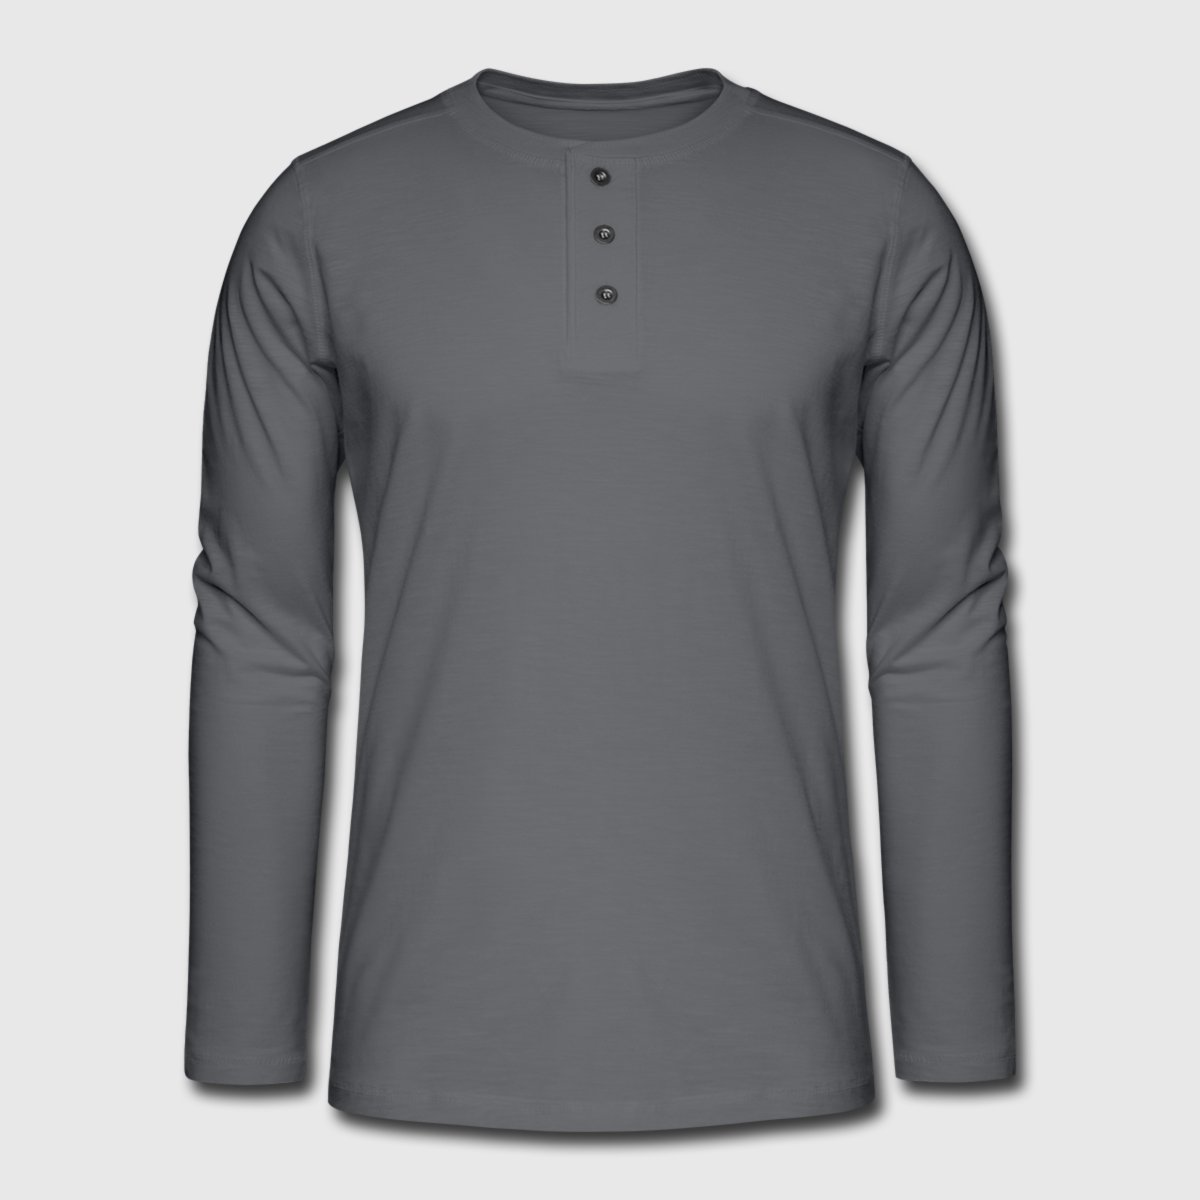 Henley long-sleeved shirt - Front